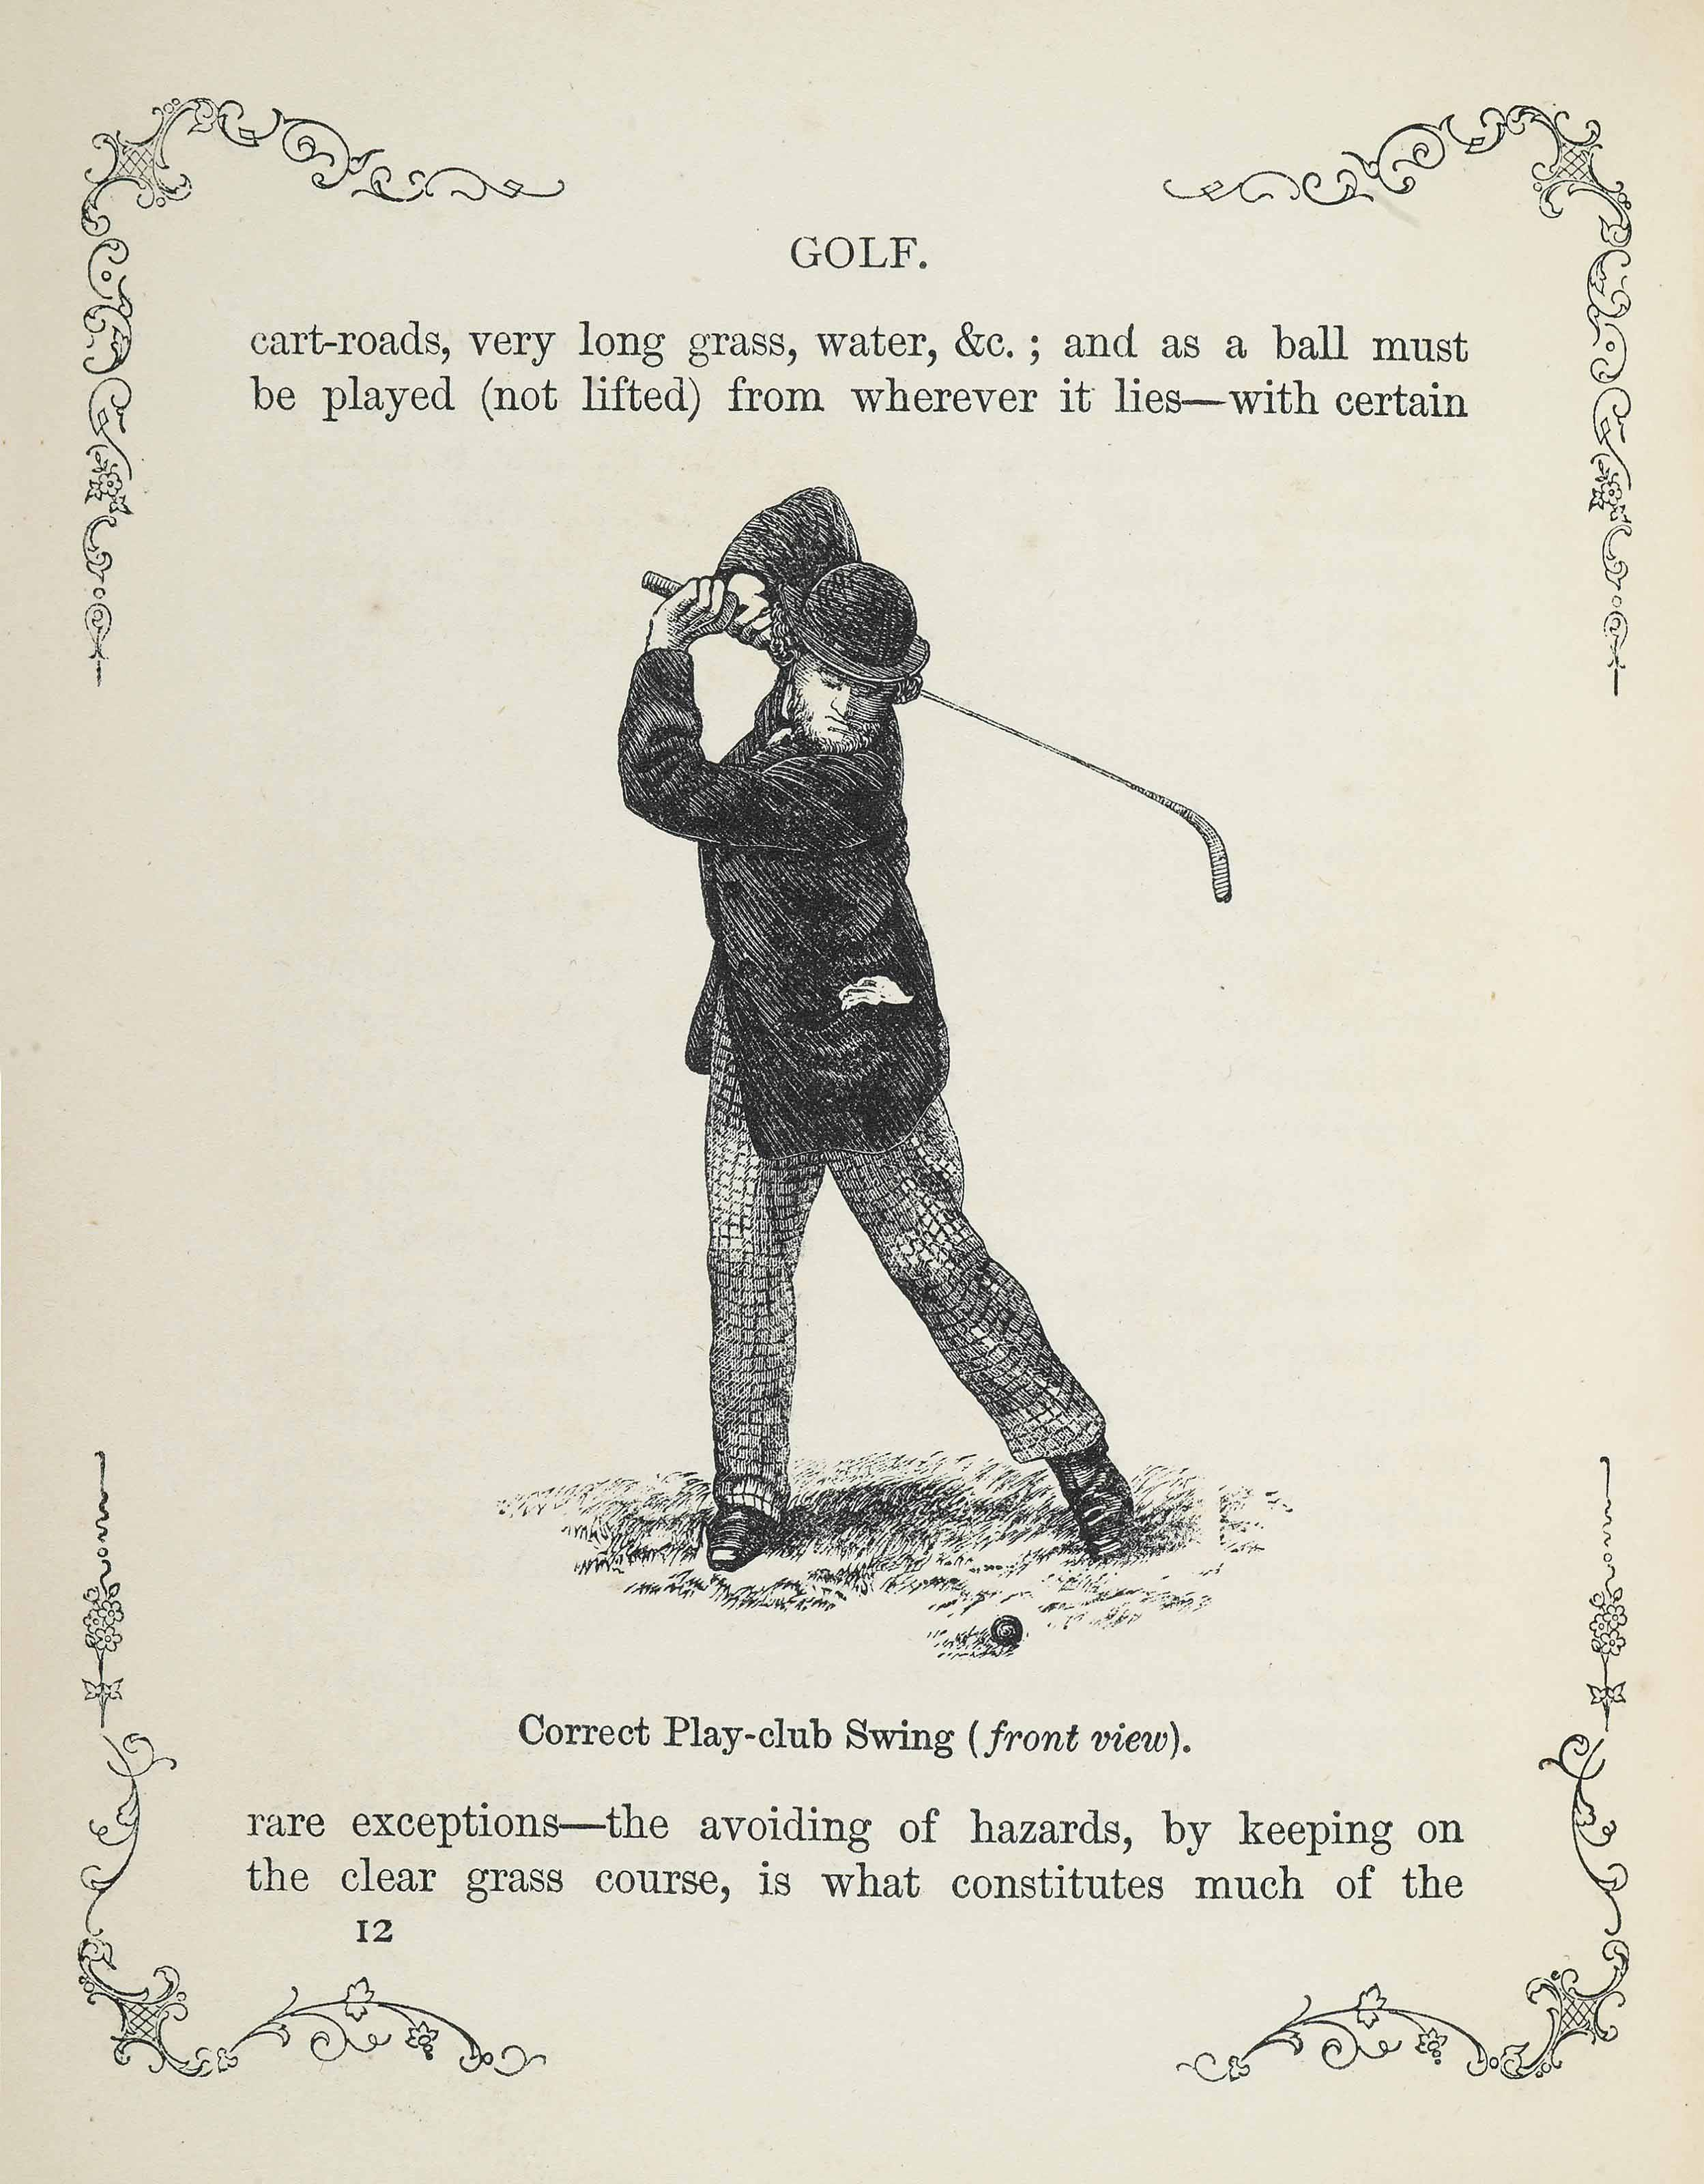 CHAMBERS, ROBERT. A FEW RAMBLING REMARKS ON GOLF, WITH THE RULES AS LAID DOWN BY THE ROYAL AND ANCIENT CLUB OF ST. ANDREWS. LONDON AND EDINBURGH: W. AND R. CHAMBERS, 1862.